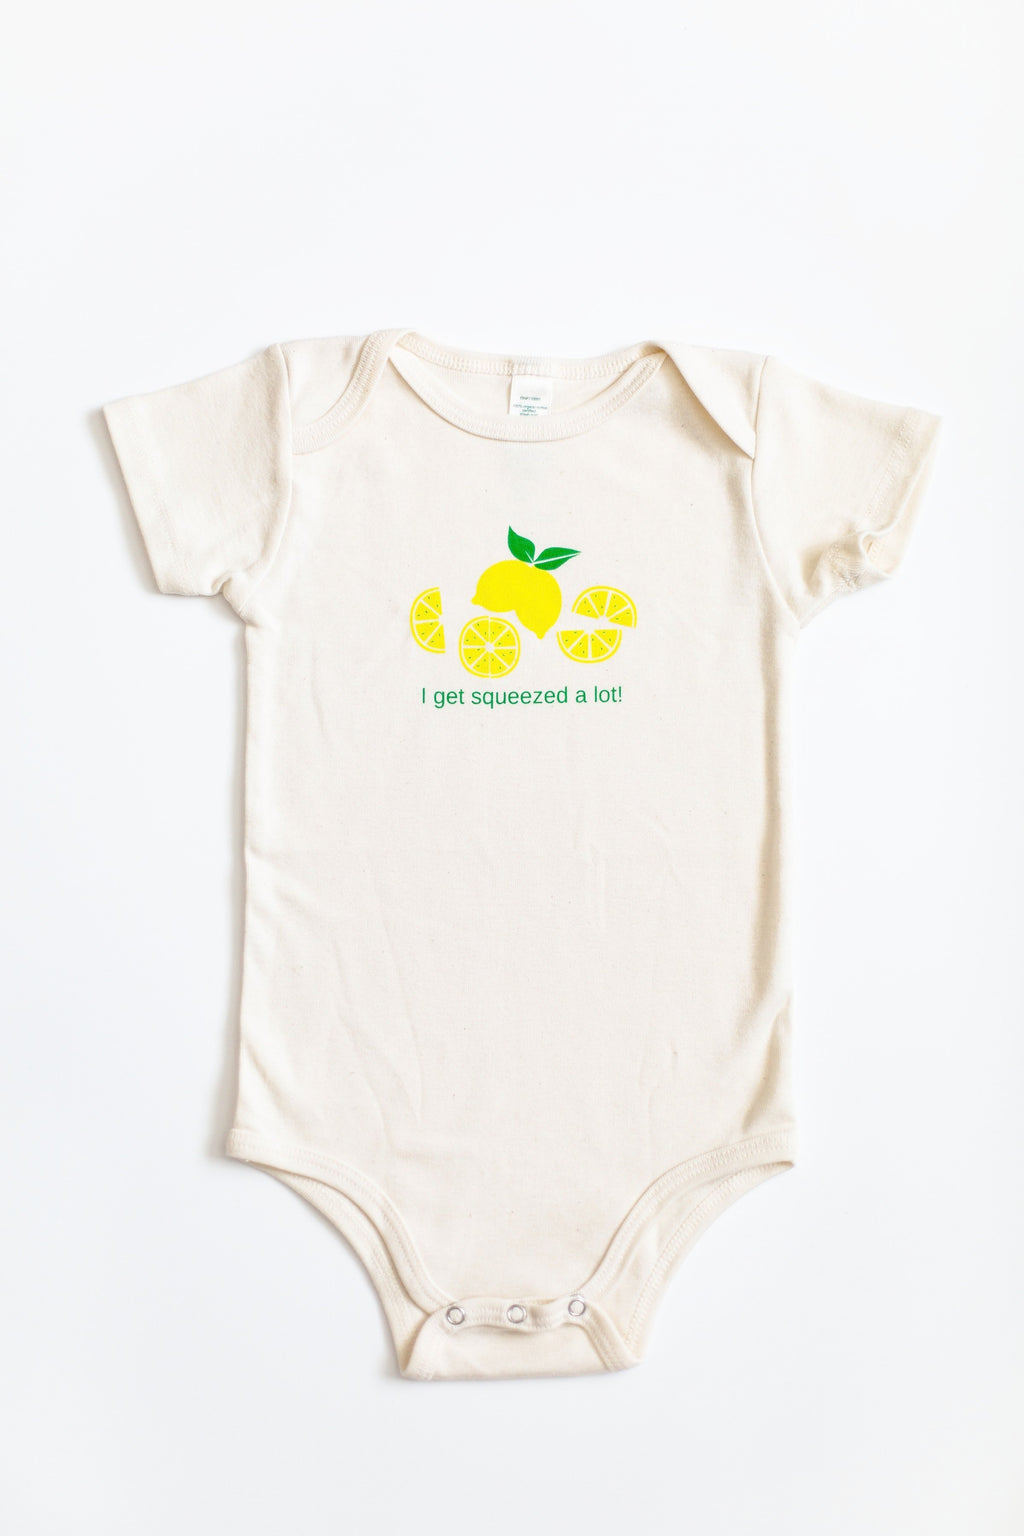 Baby Onesie - I Get Squeezed A Lot